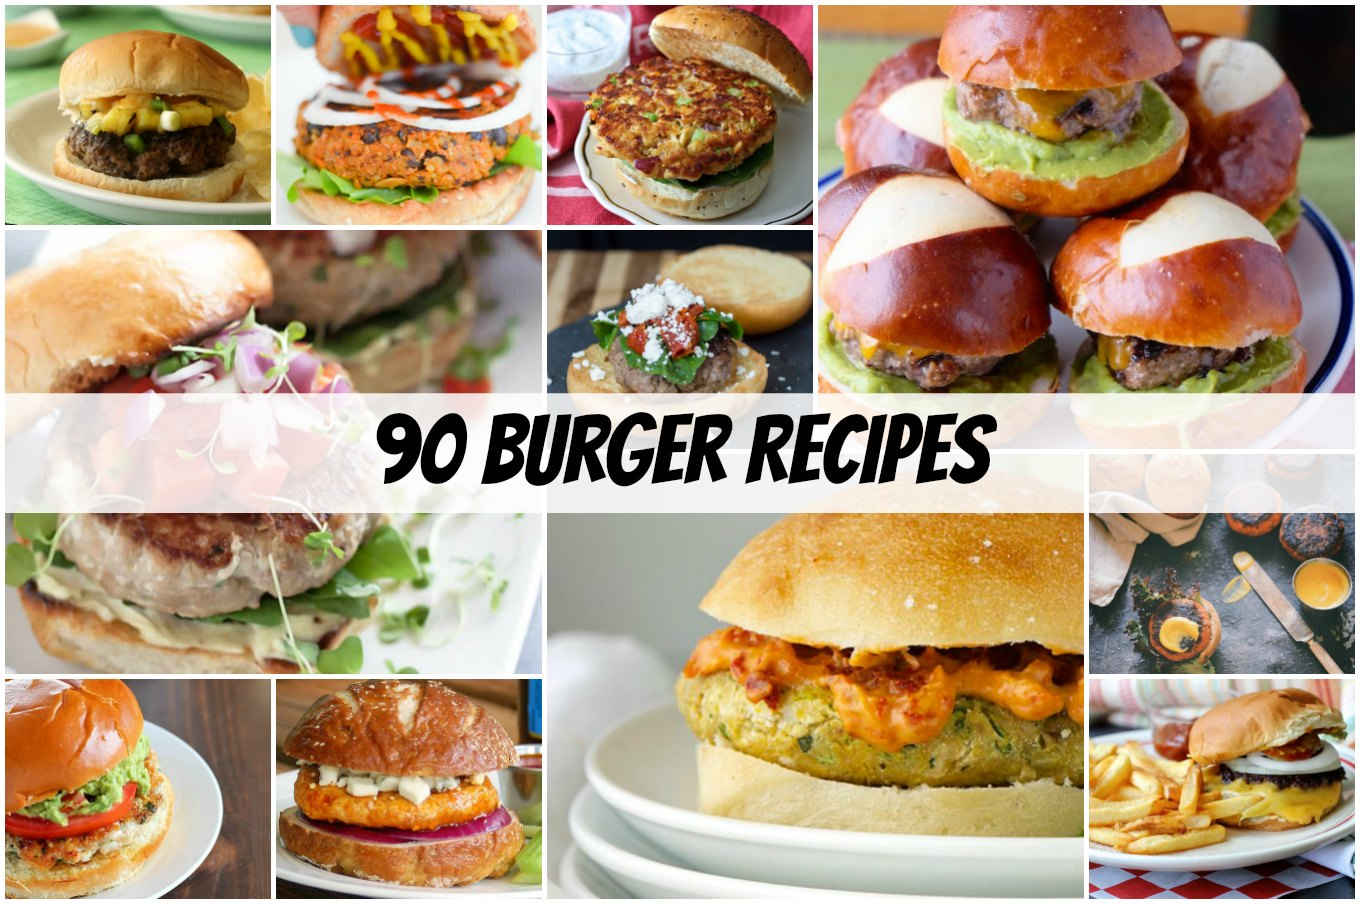 May is National Burger Month! I've put together a list of 90 burgers you'll want to enjoy all summer long.